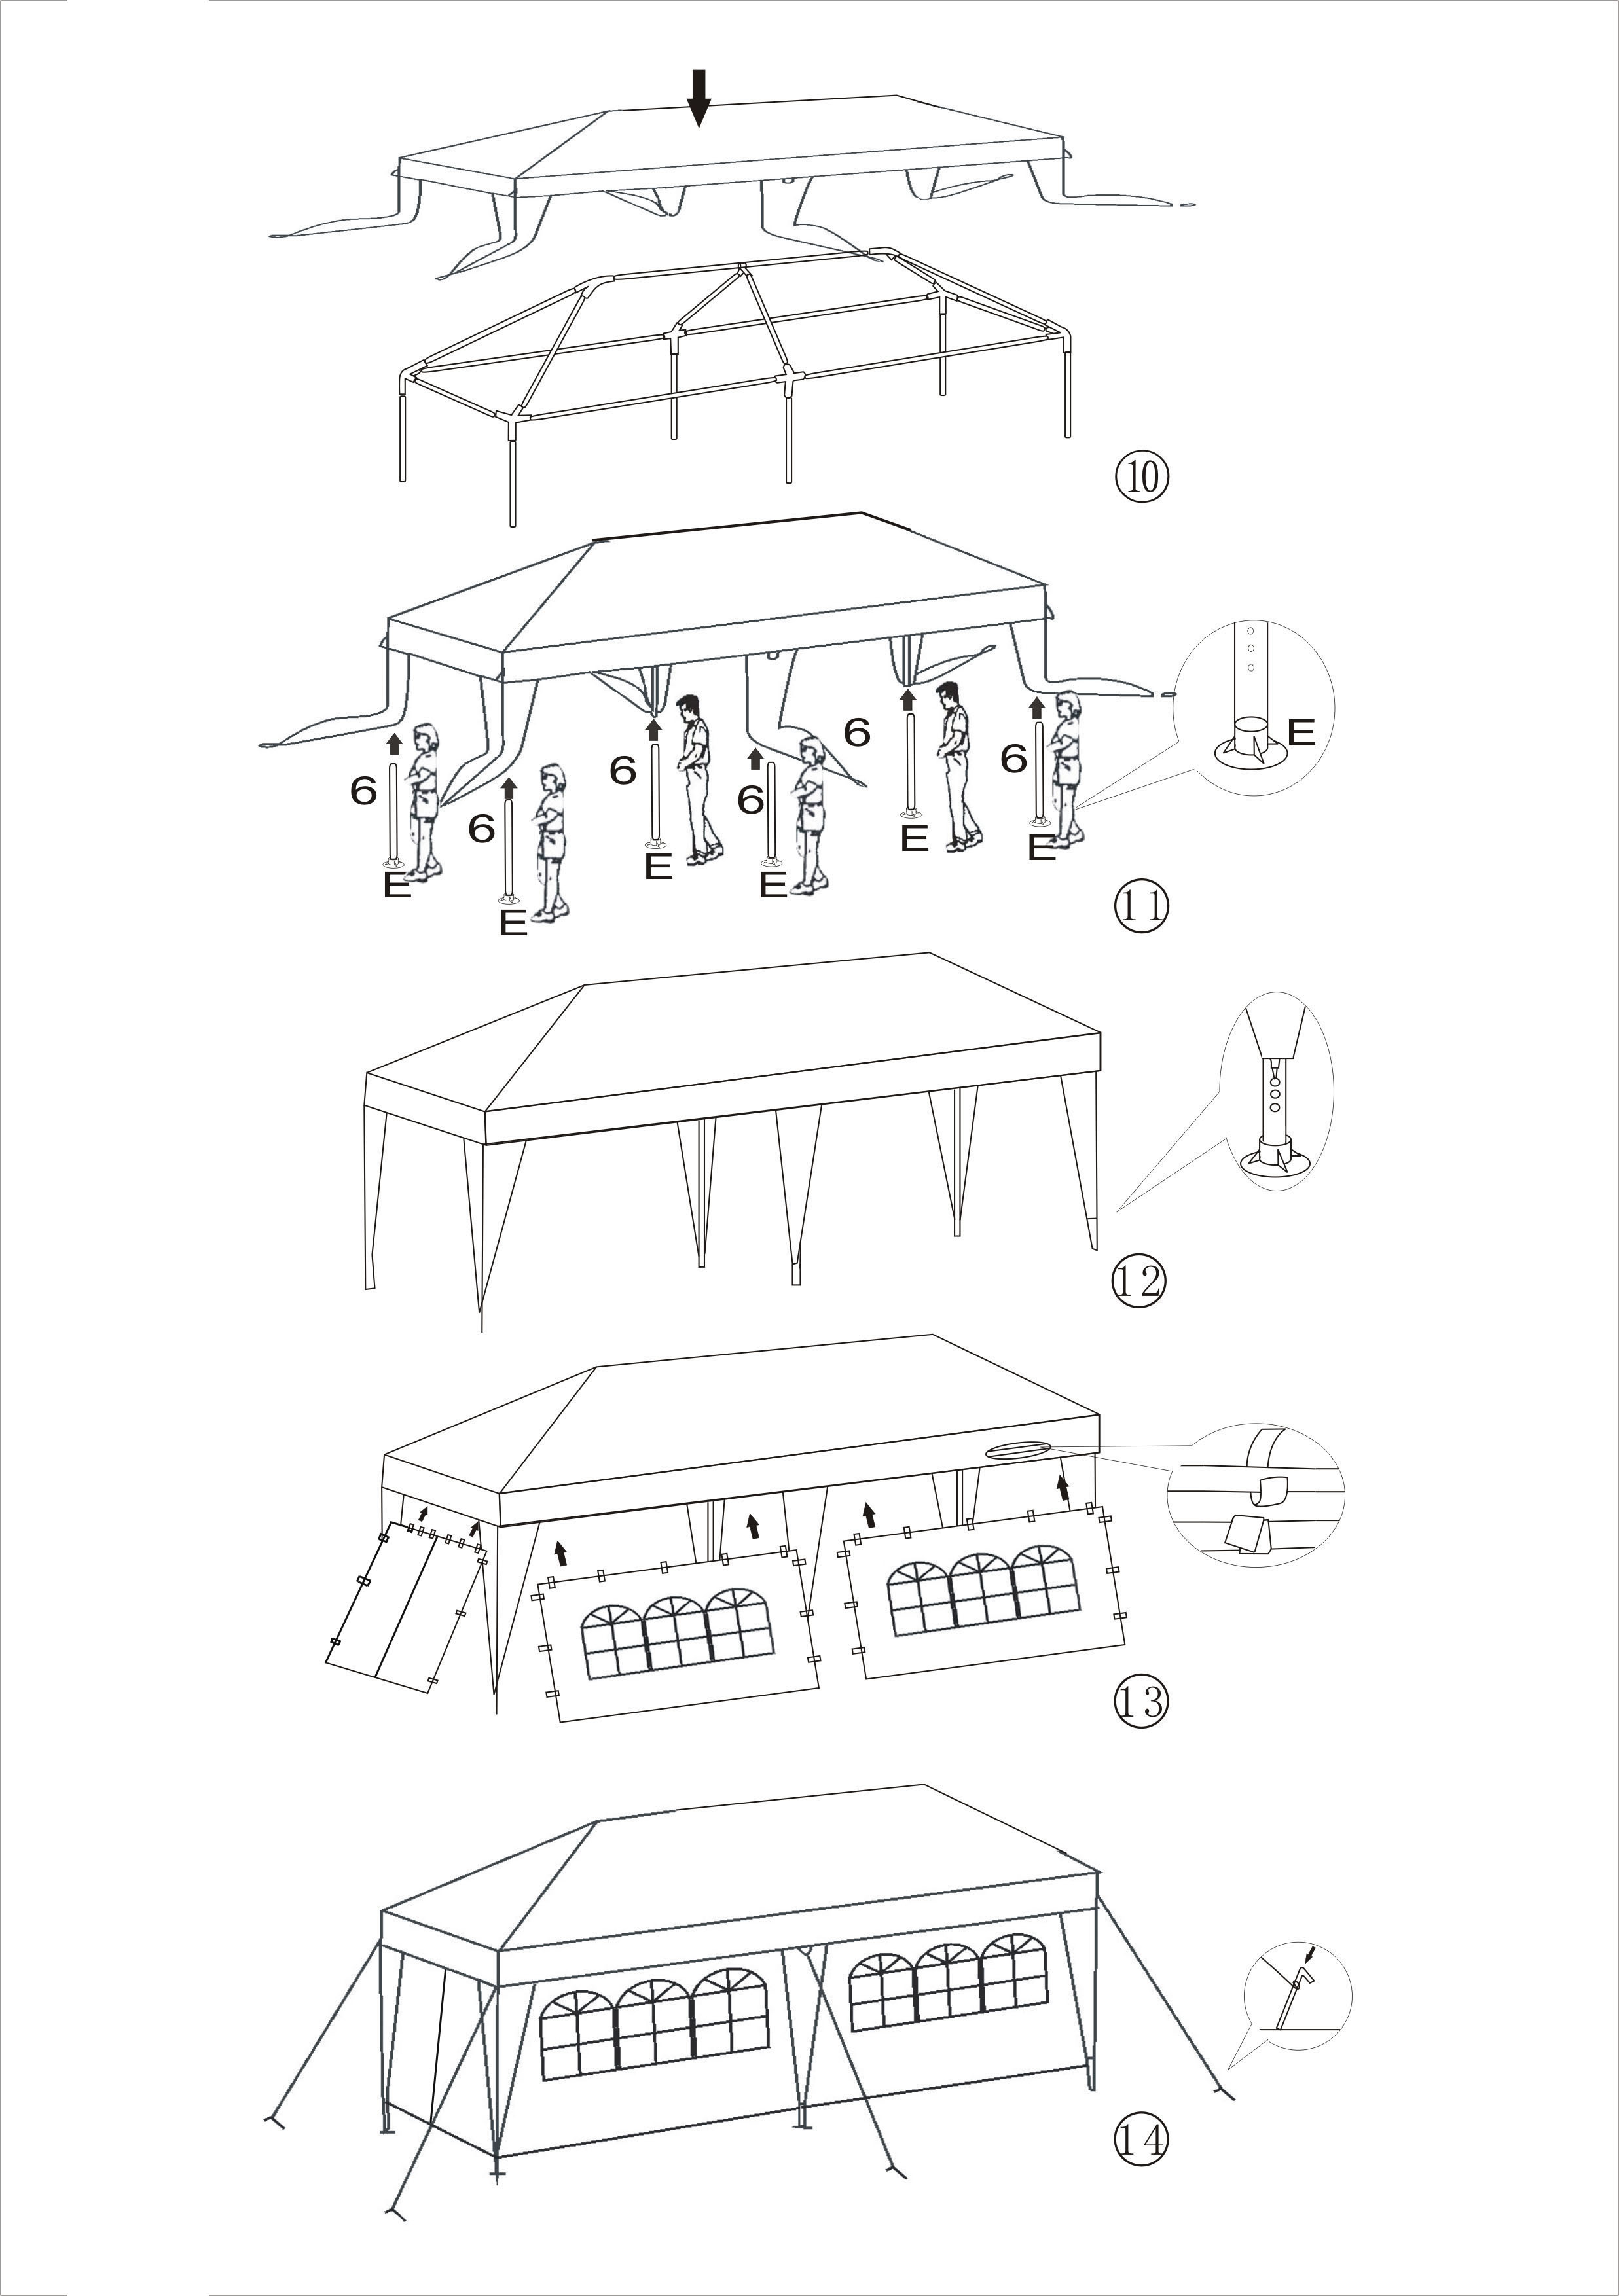 Tent For Outdoor Picnic Party Or Storage 20 X 10 White Aleko